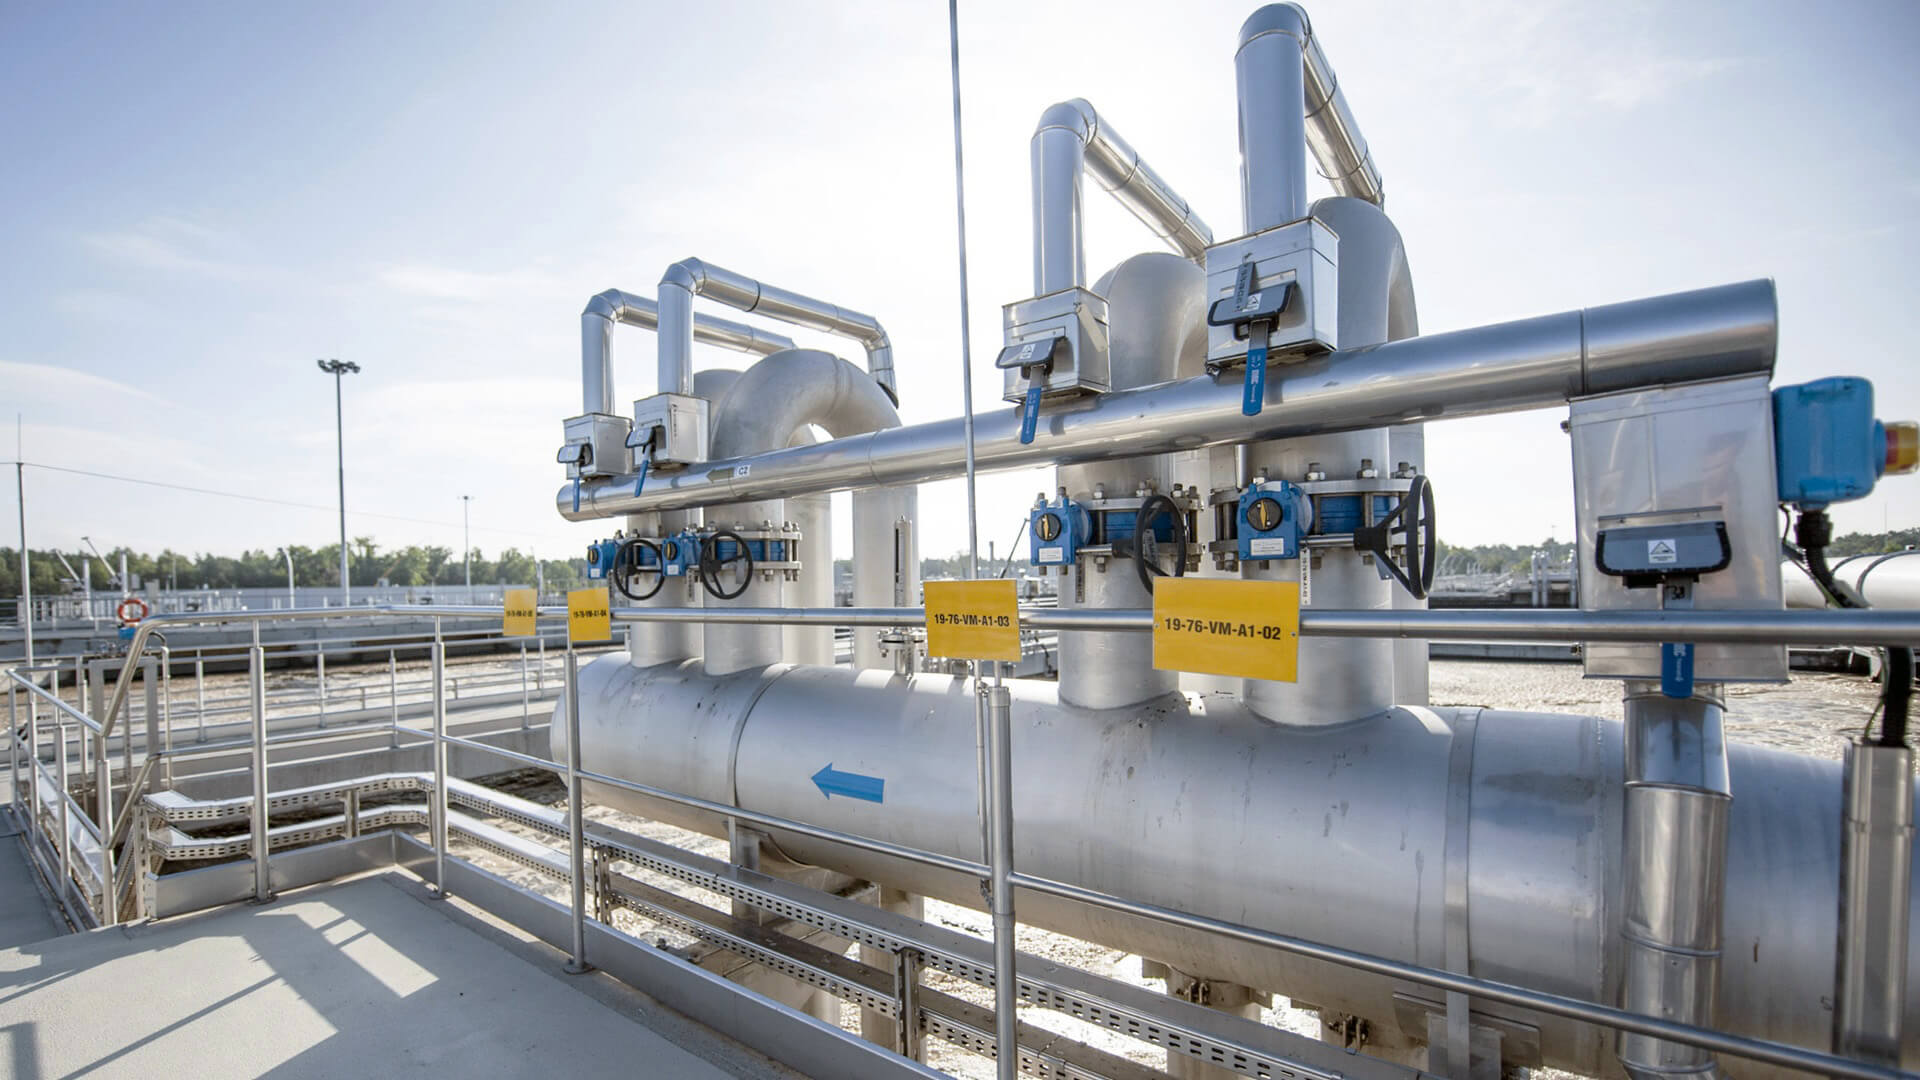 Air blowers play a key role in wastewater treatment. They are typically used to provide aeration in activated sludge plants and to promote aerobic digestion. They keep solids suspended in channels and in aeriated grit chambers, which is absolutely necessary for a proper treatment ecosystem.